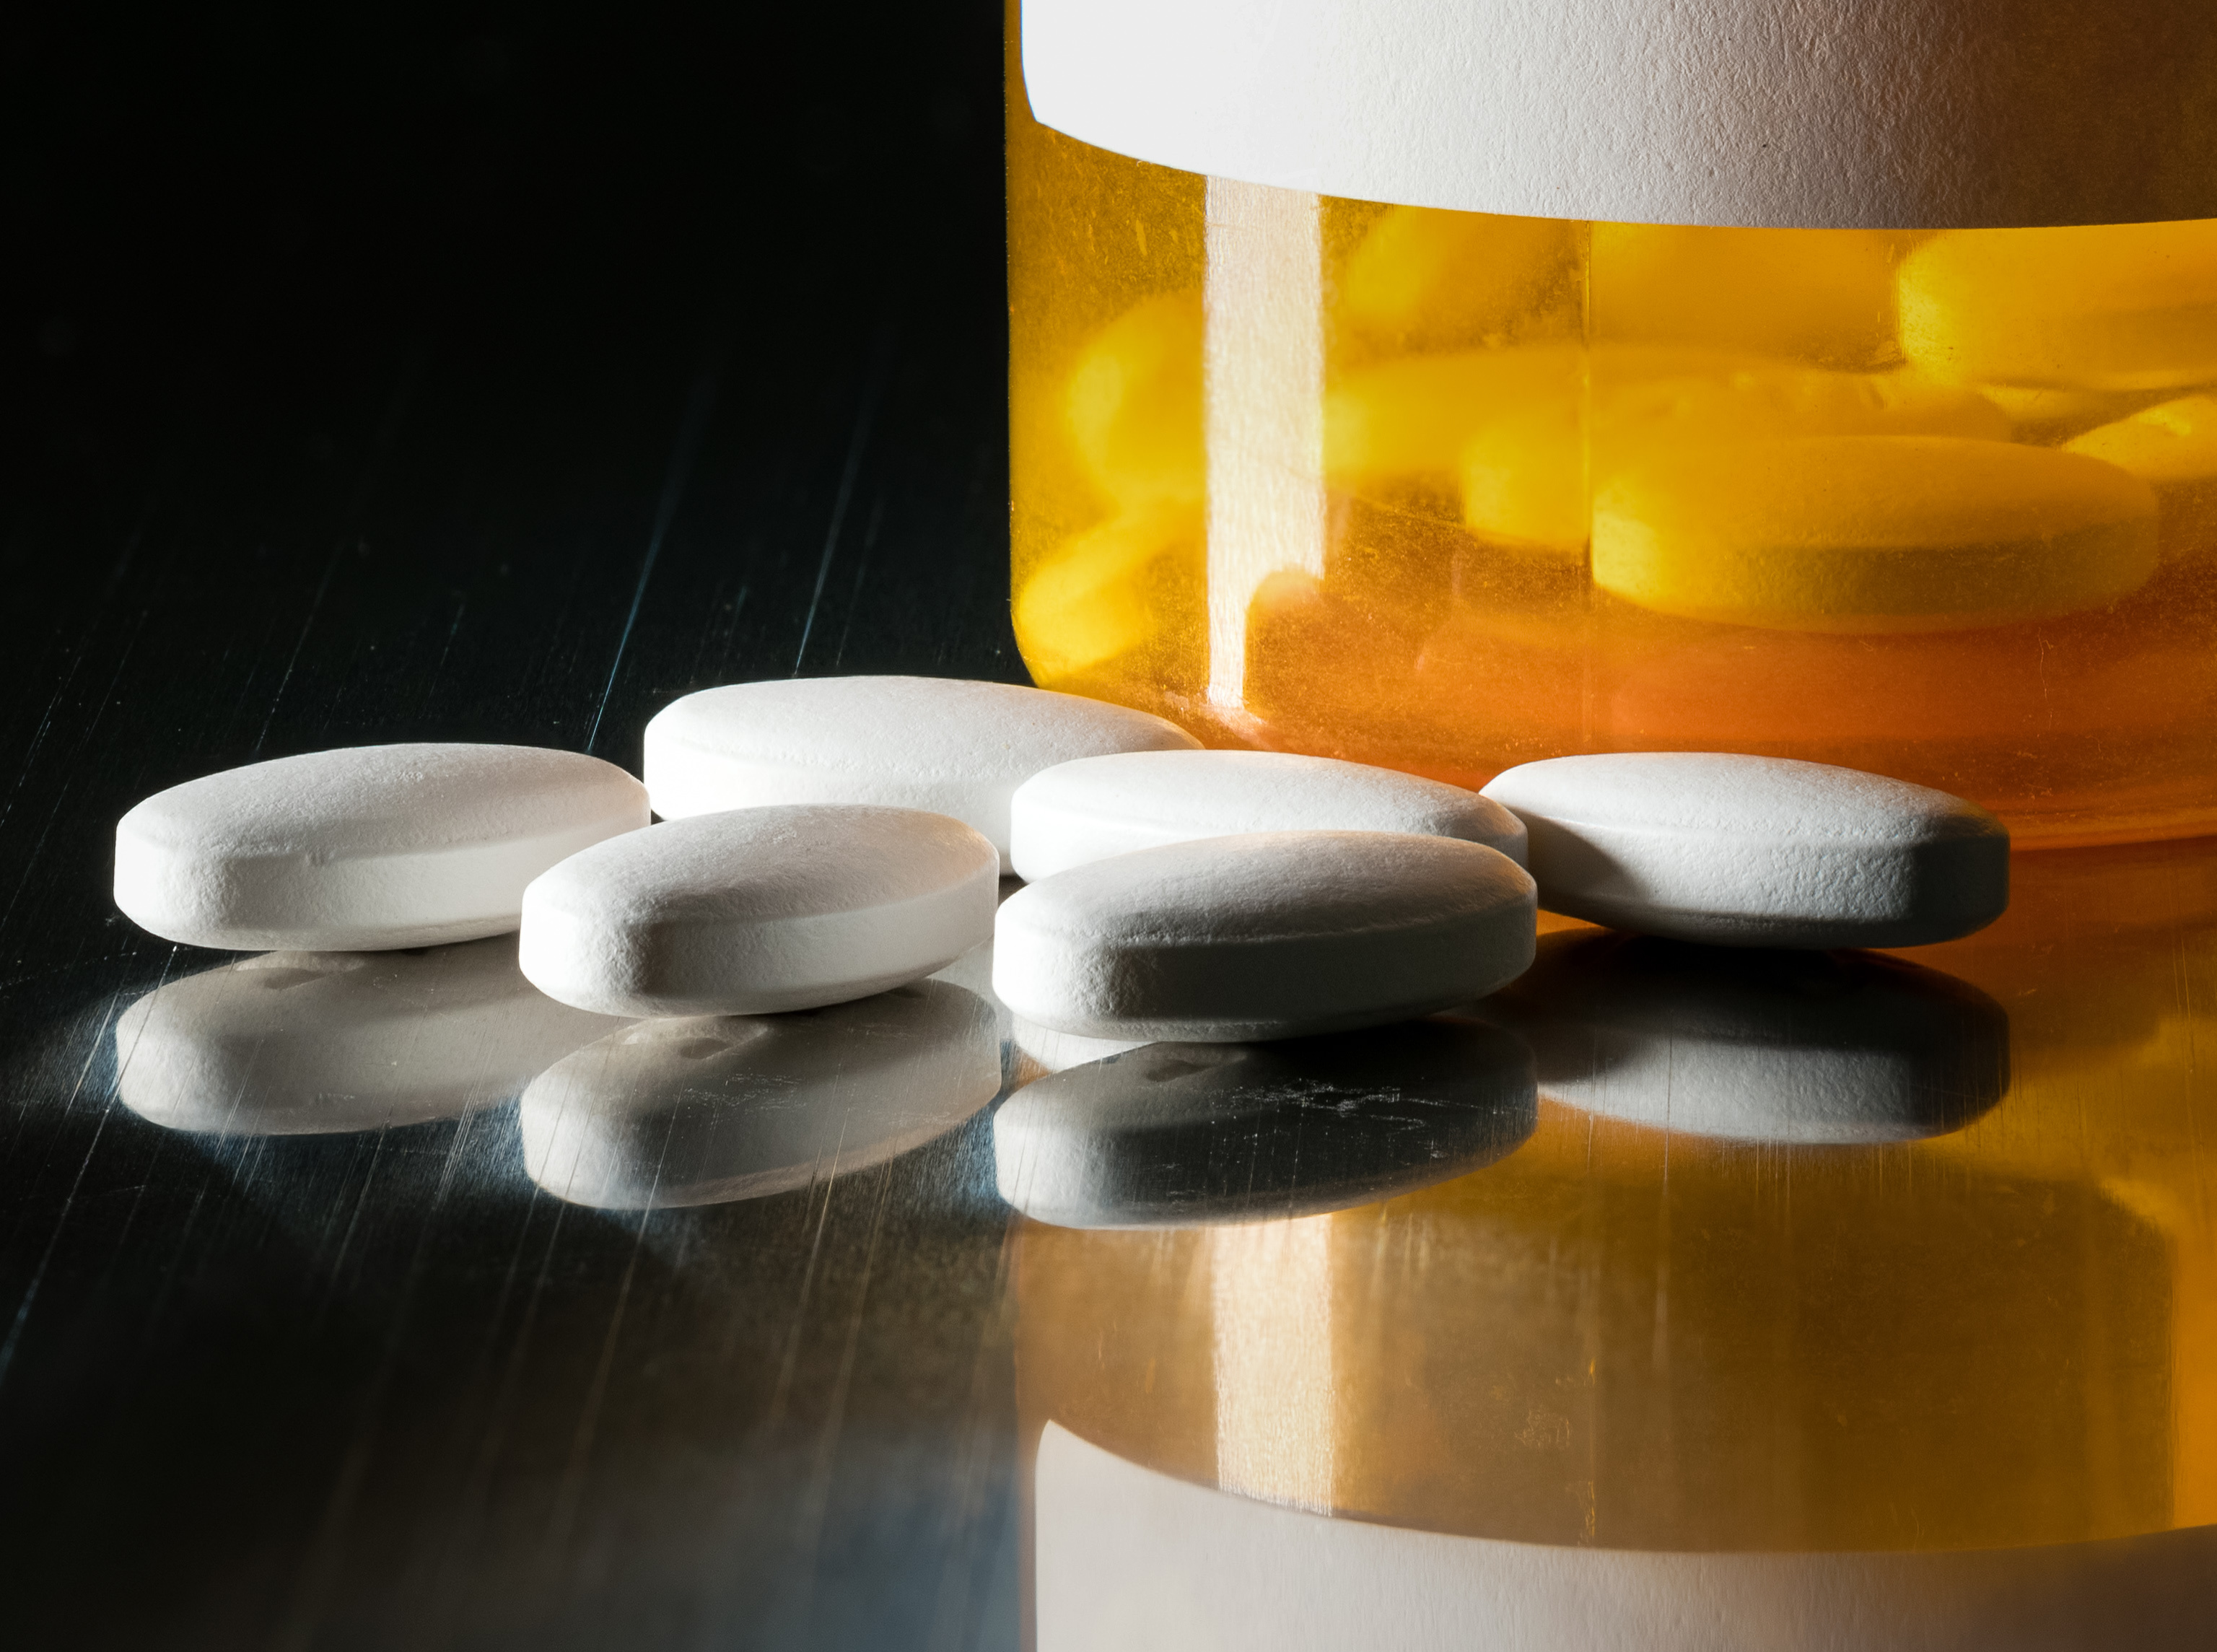 Prescription bottle with blank label for copy space and white pills or tablets on metal table for opioid epidemic illustration